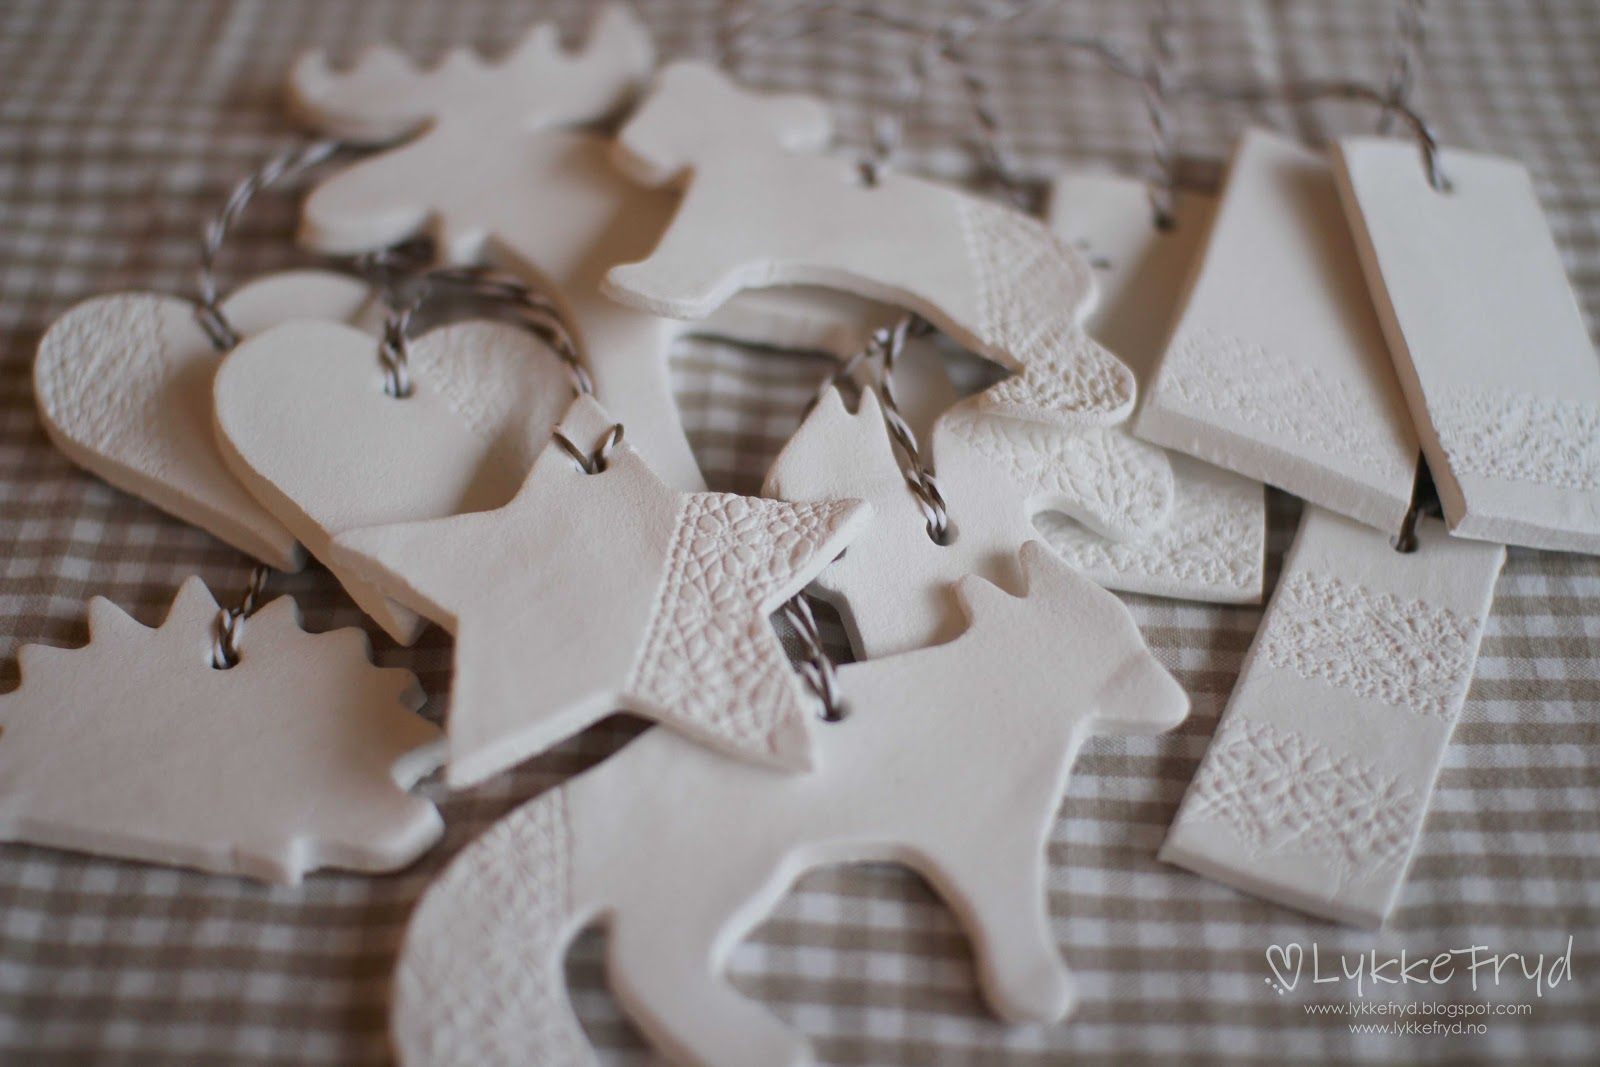 Lykkefryd Ikea cookie cutter ornaments